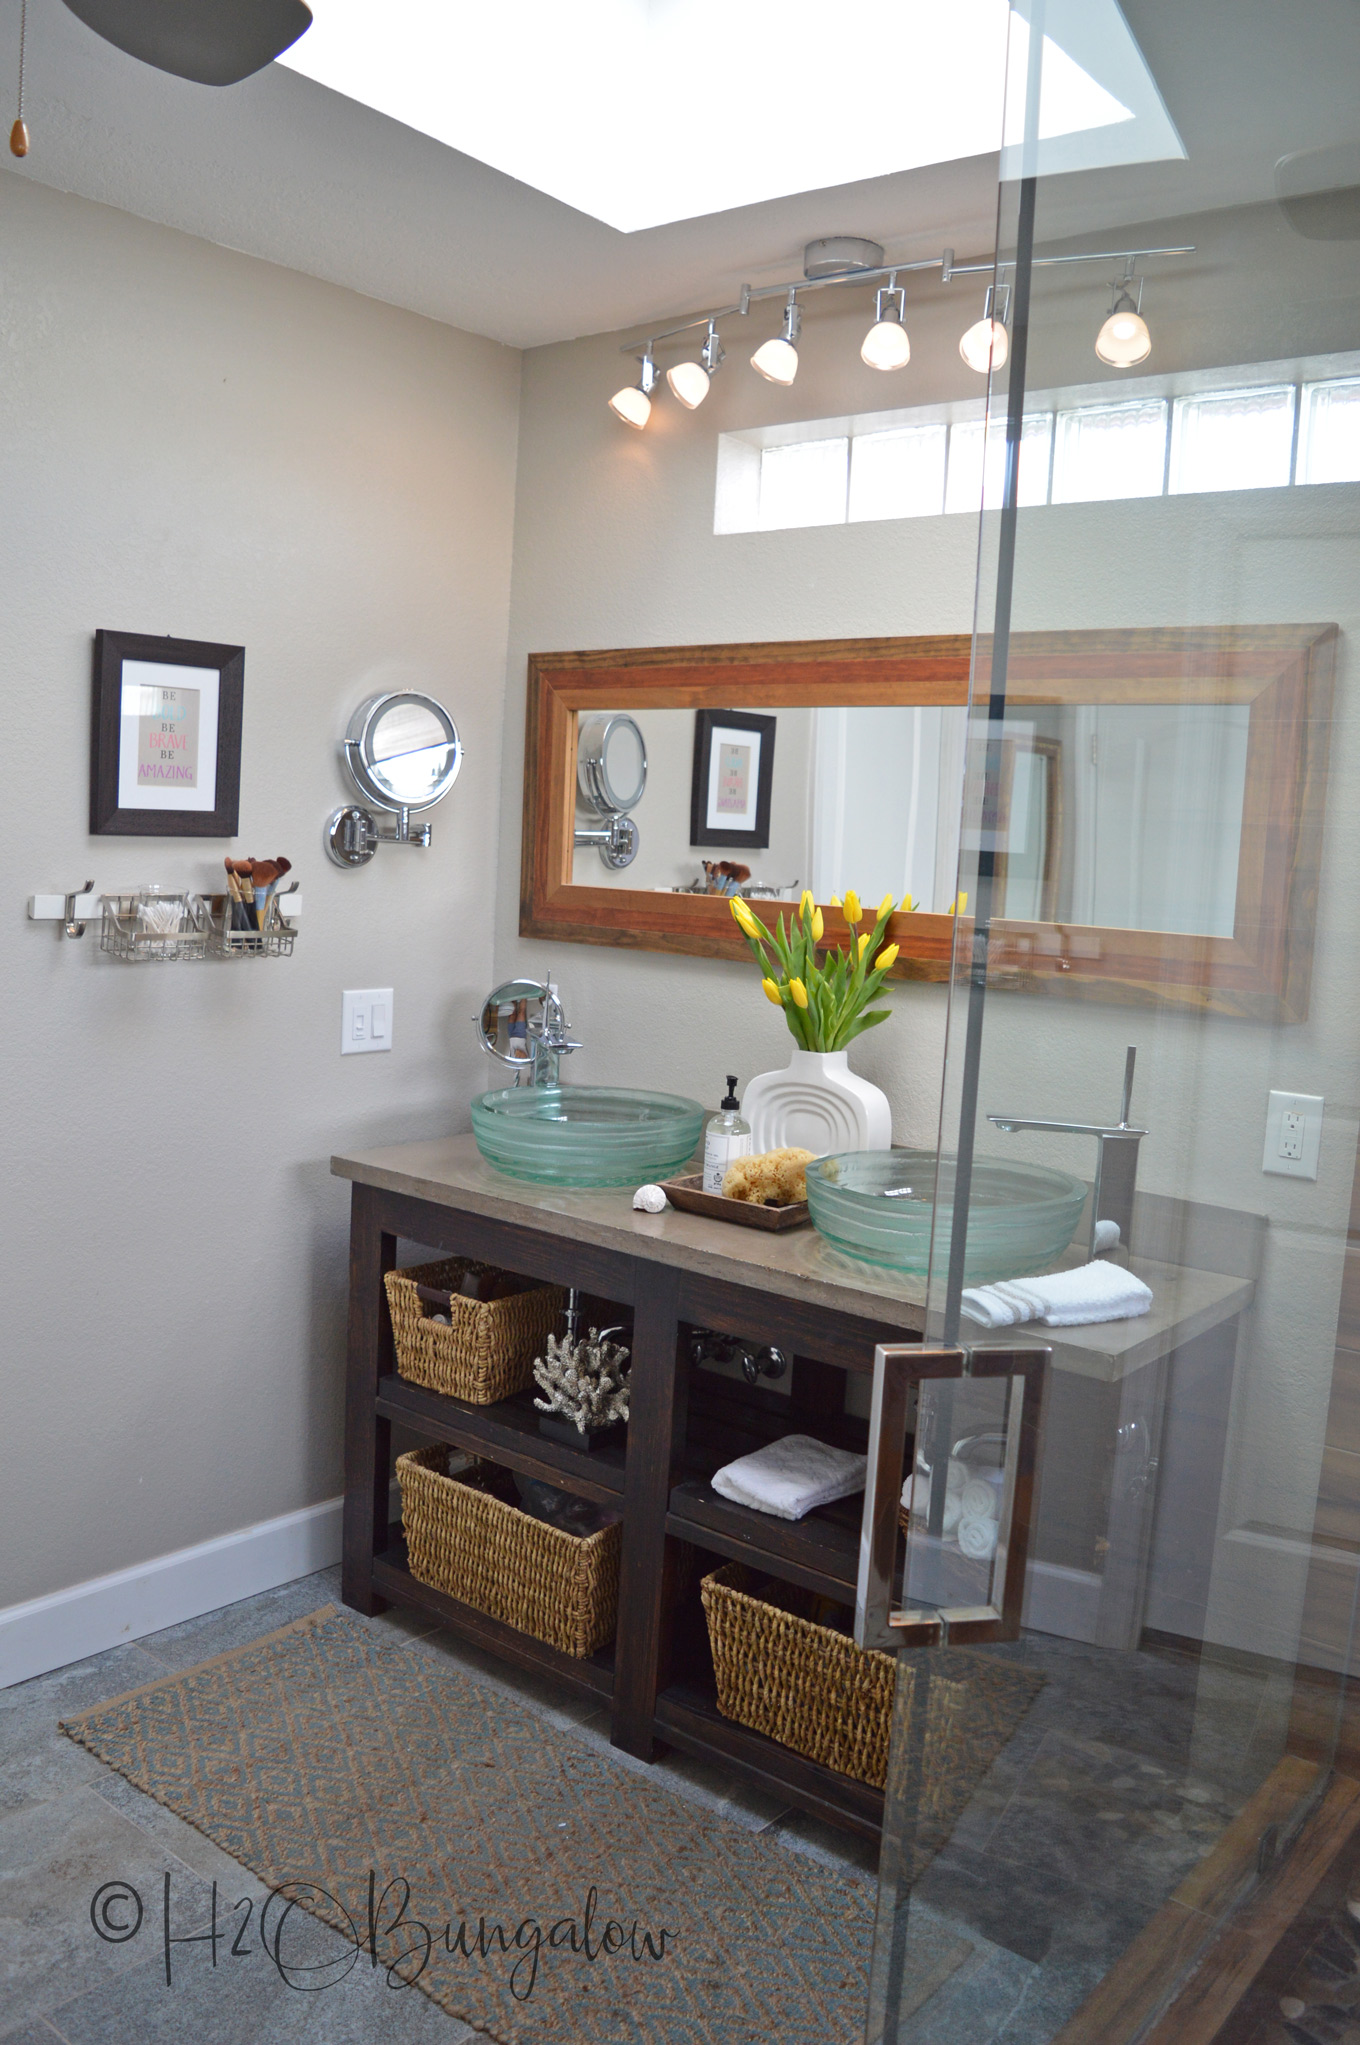 Today I want to share my spring master bath tour and mini makeover. Since we put in new skylights, the master bath was feeling tired. With a few simple changes and a little shopping, my coastal rustic master bath feels fresh and welcoming again. I point out the many awesome DIY projects that make this room special too!